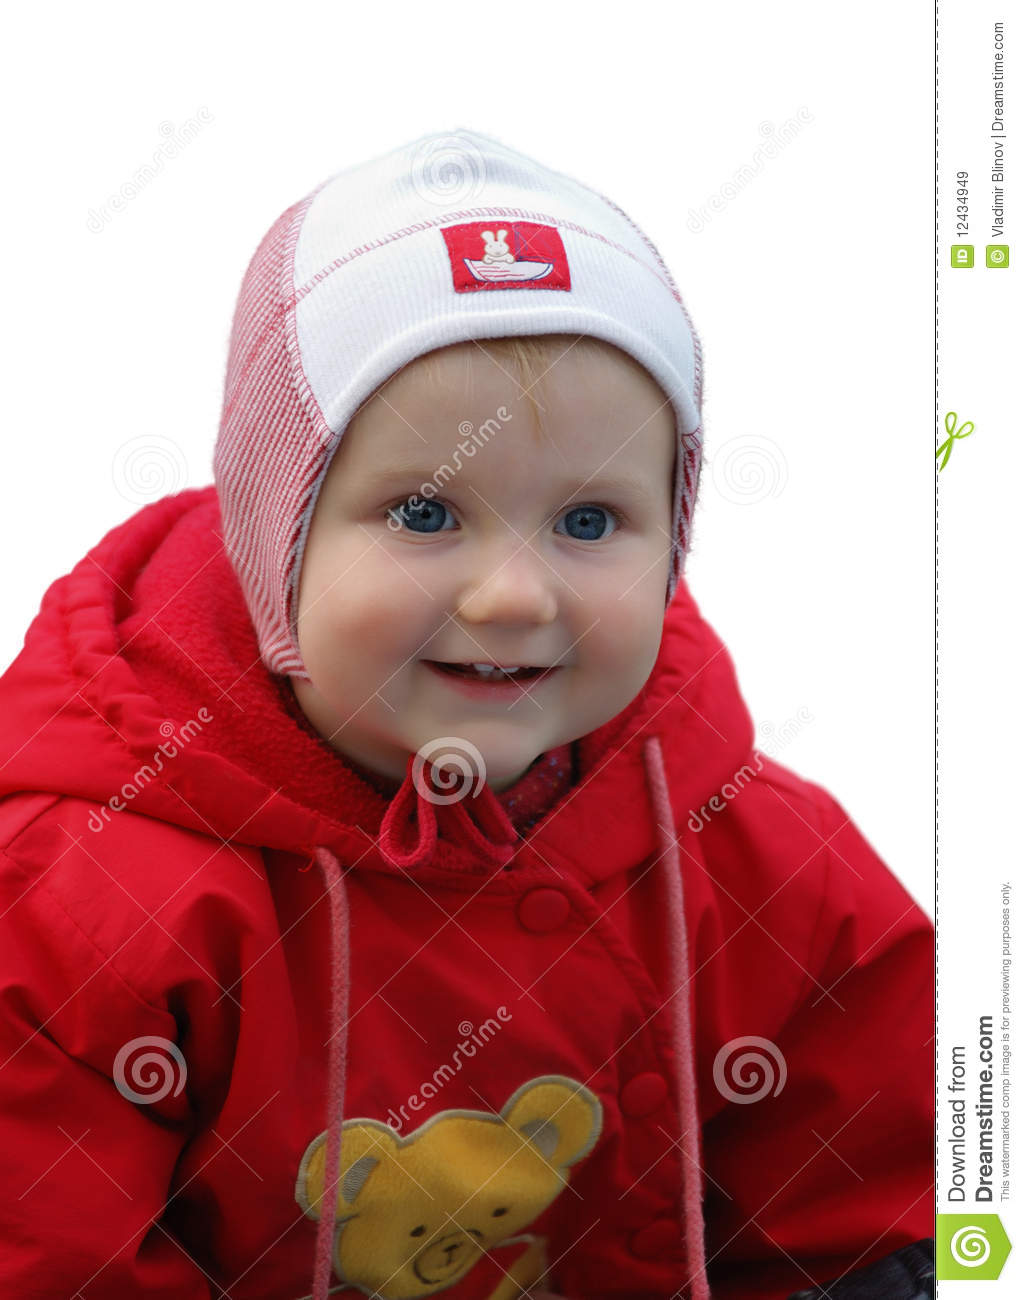 child playing in the park royalty free stock images   image 12434949